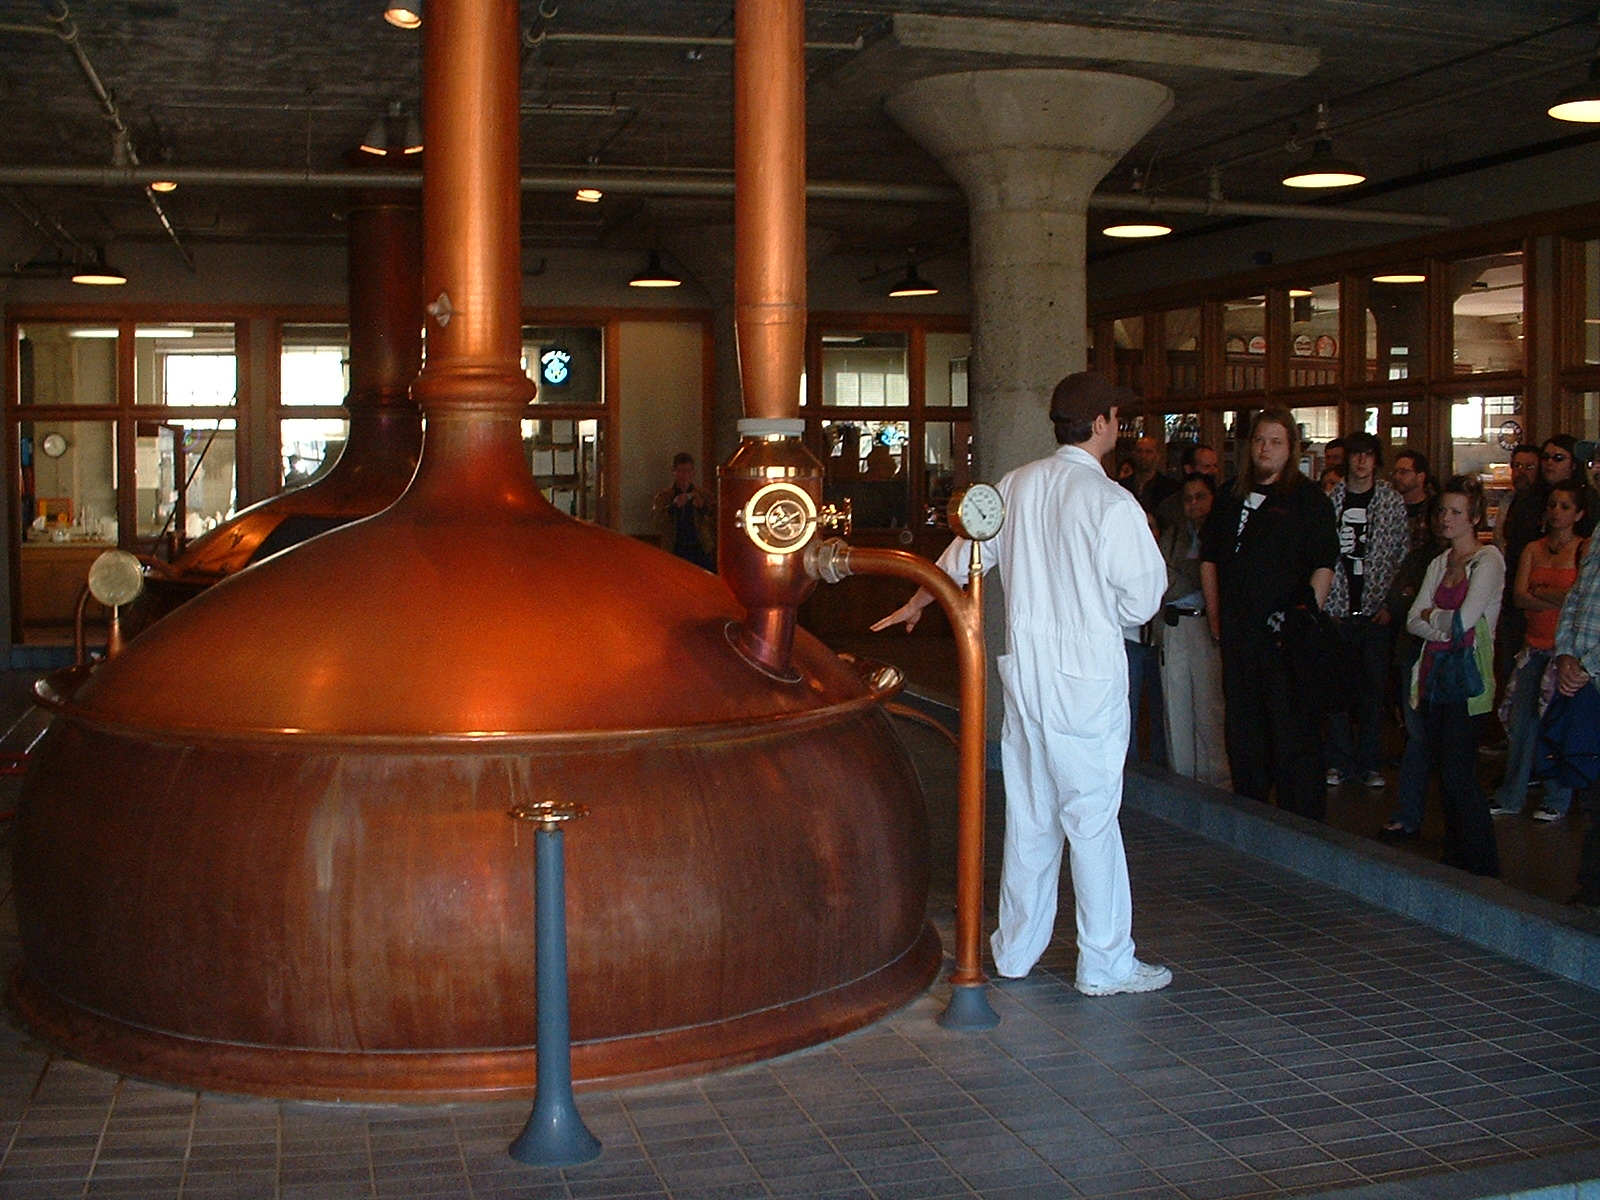 In business since 1896, Potrero-based Anchor Brewing Company hosts regular tours of its facilities.